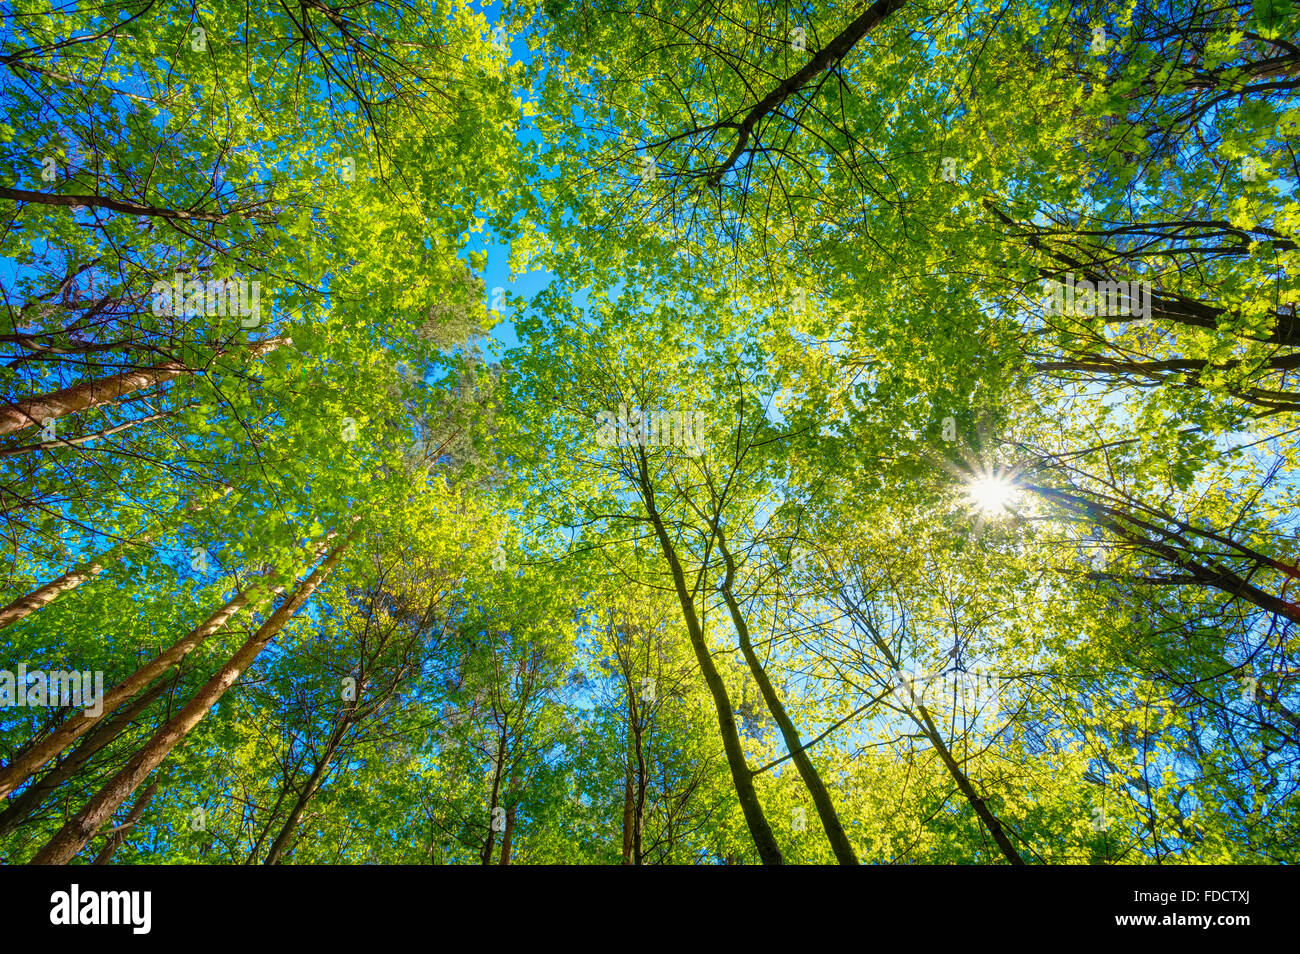 Spring Summer Sun Shining Through Canopy Of Tall Trees. Sunlight In Deciduous Forest, Summer Nature. Upper Branches - Stock Image